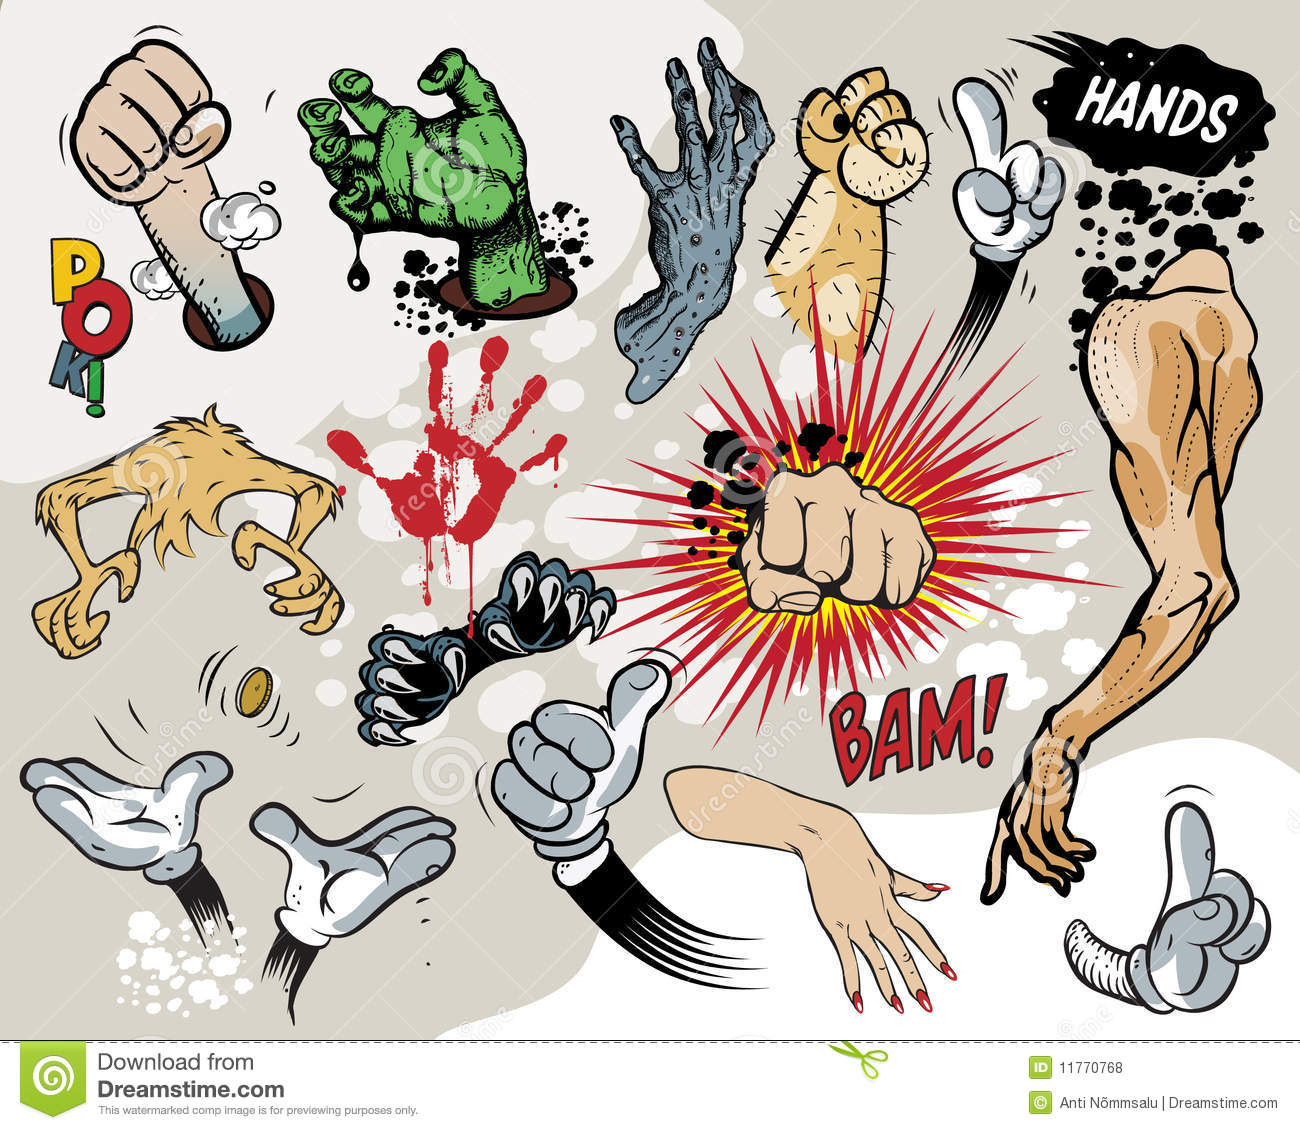 Comic Book Hands Royalty Free Stock Photos Image